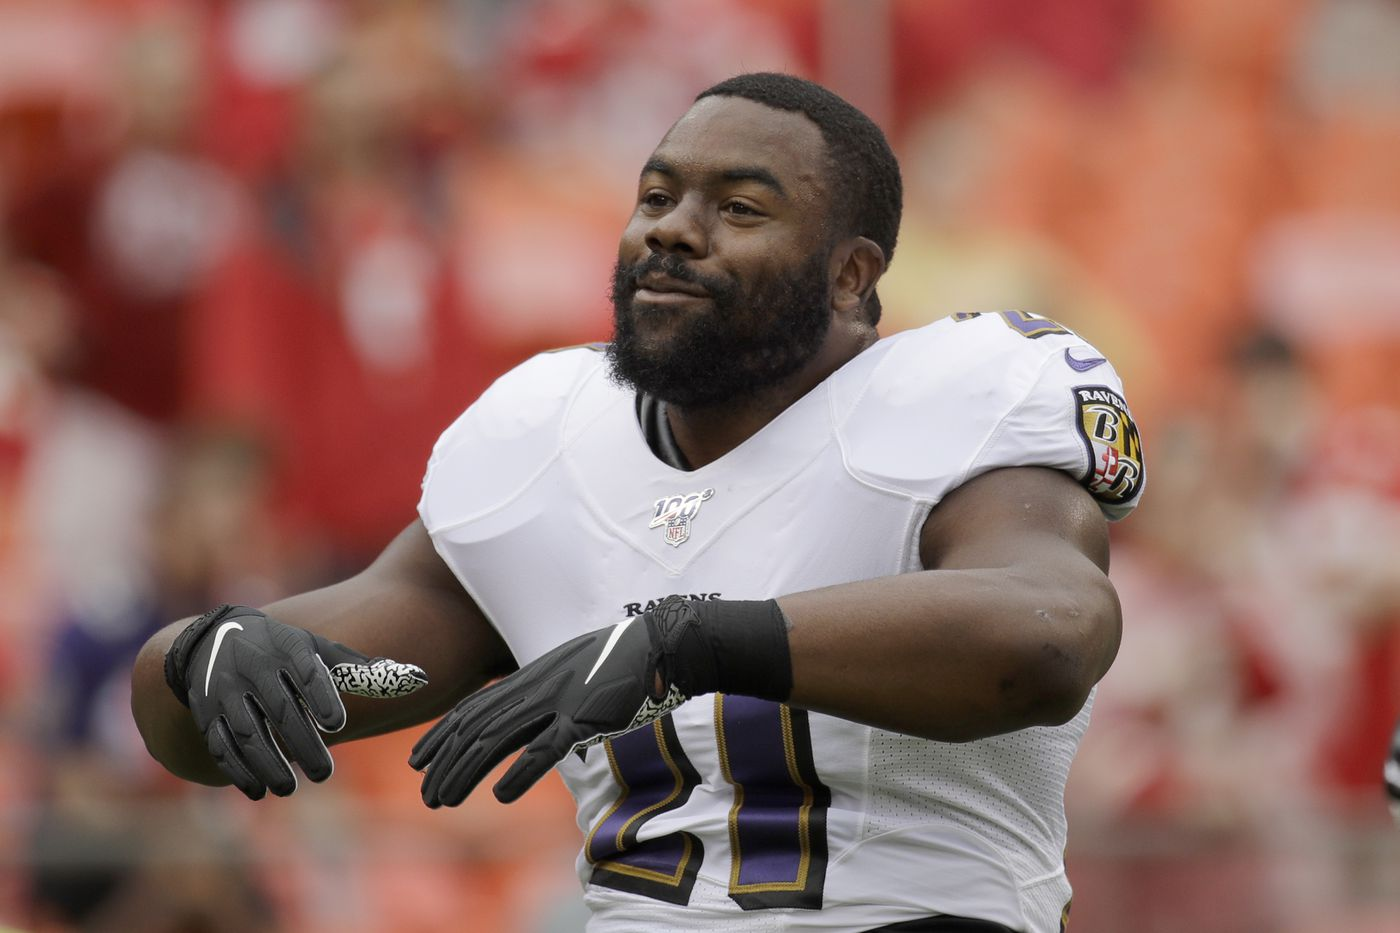 Fantasy Football Running Backs Who Need to be Dumped or Benched